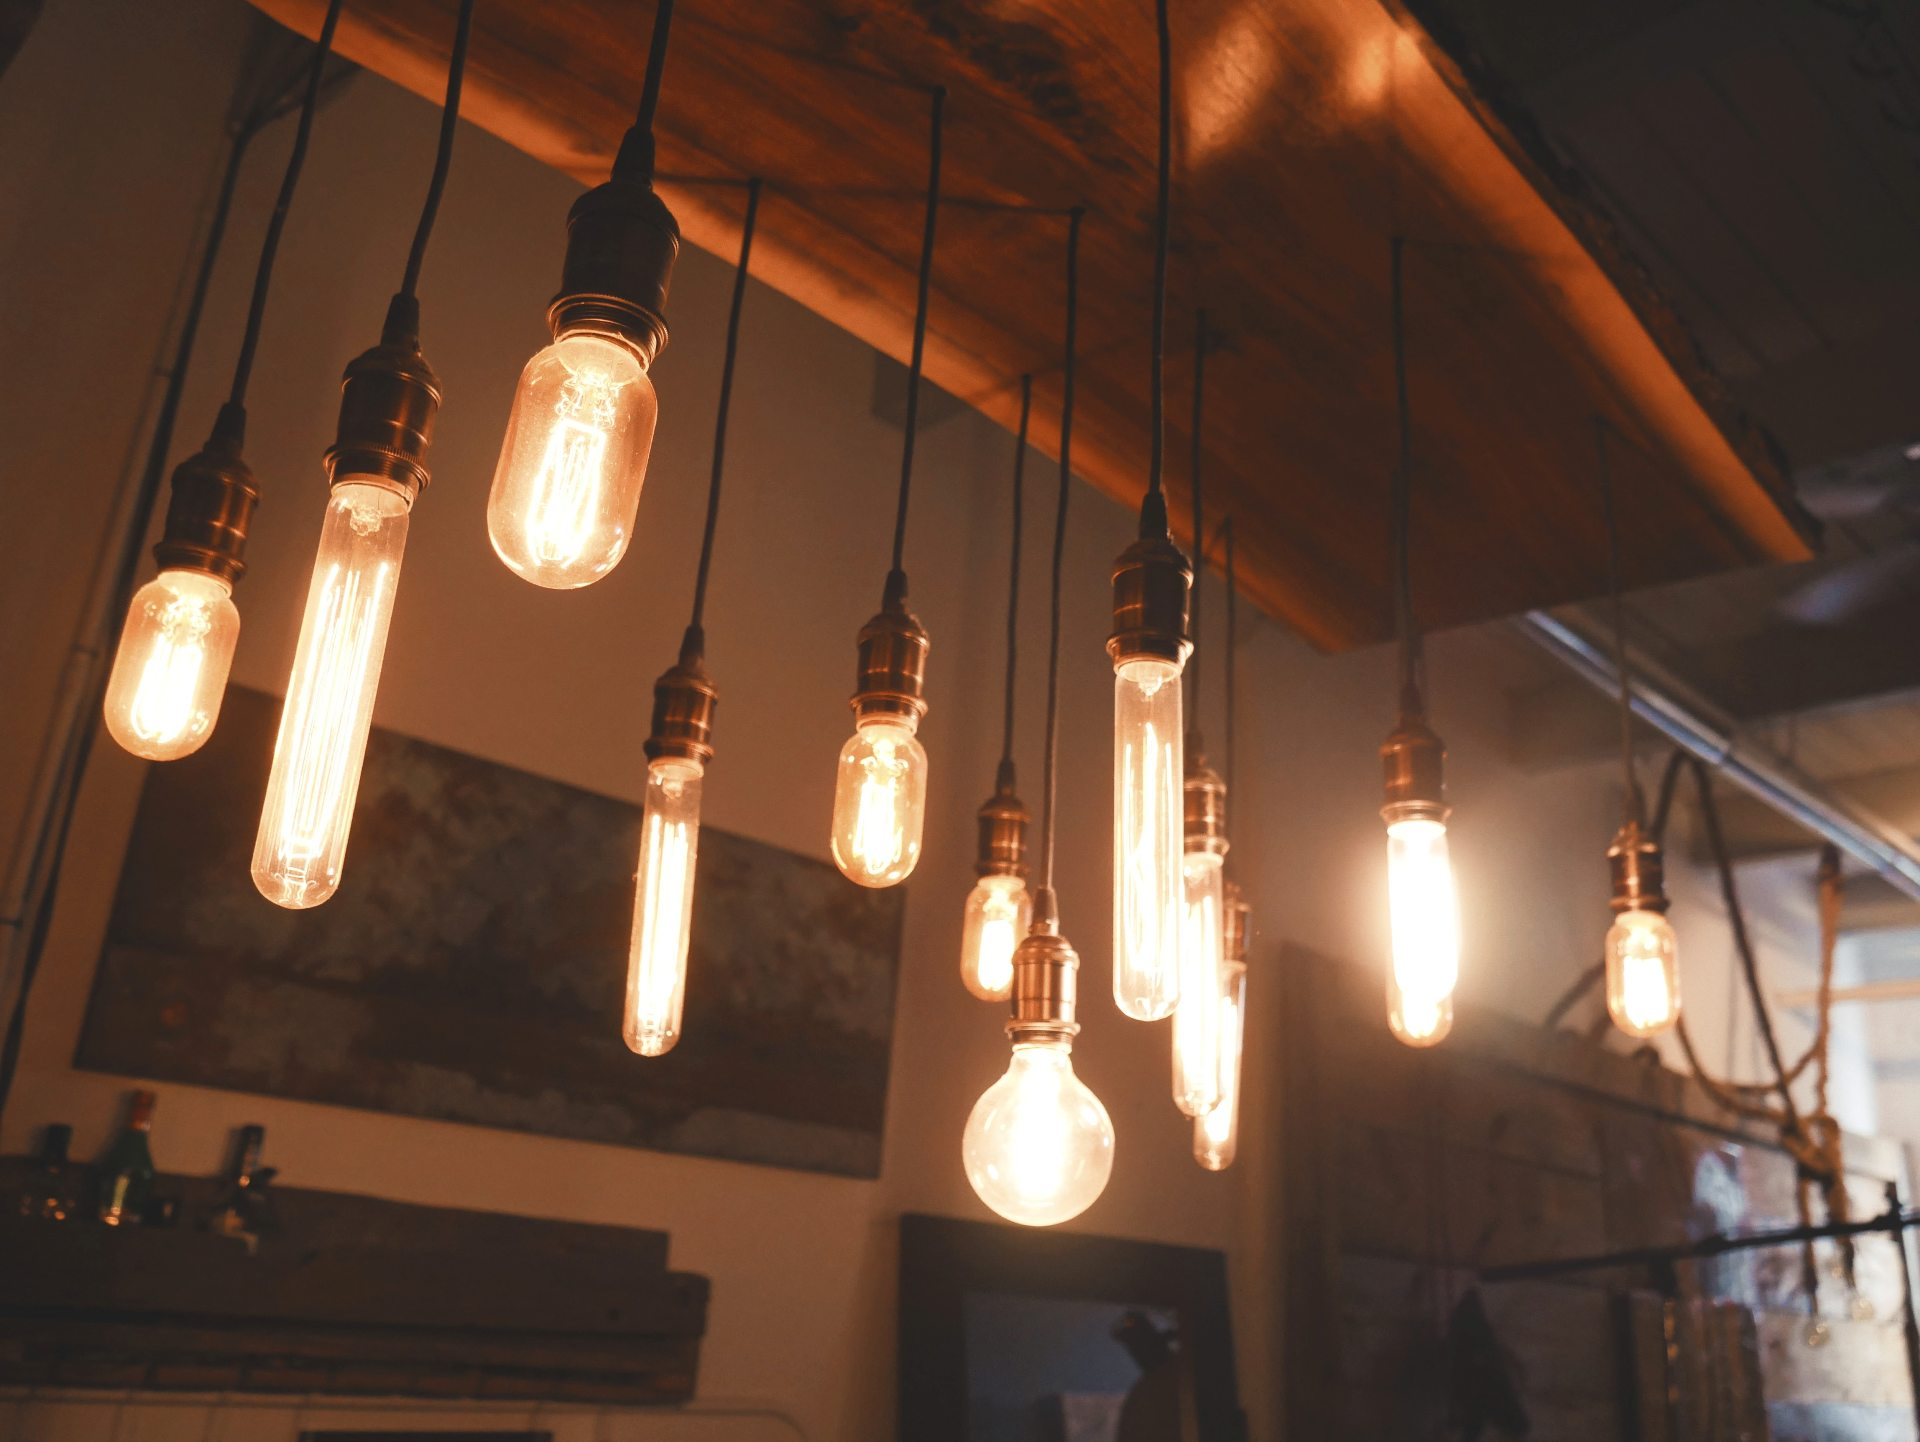 A variety of glowing Edison-style lightbulbs hang from the ceiling (Photo by Patrick Tomasso on Unsplash)